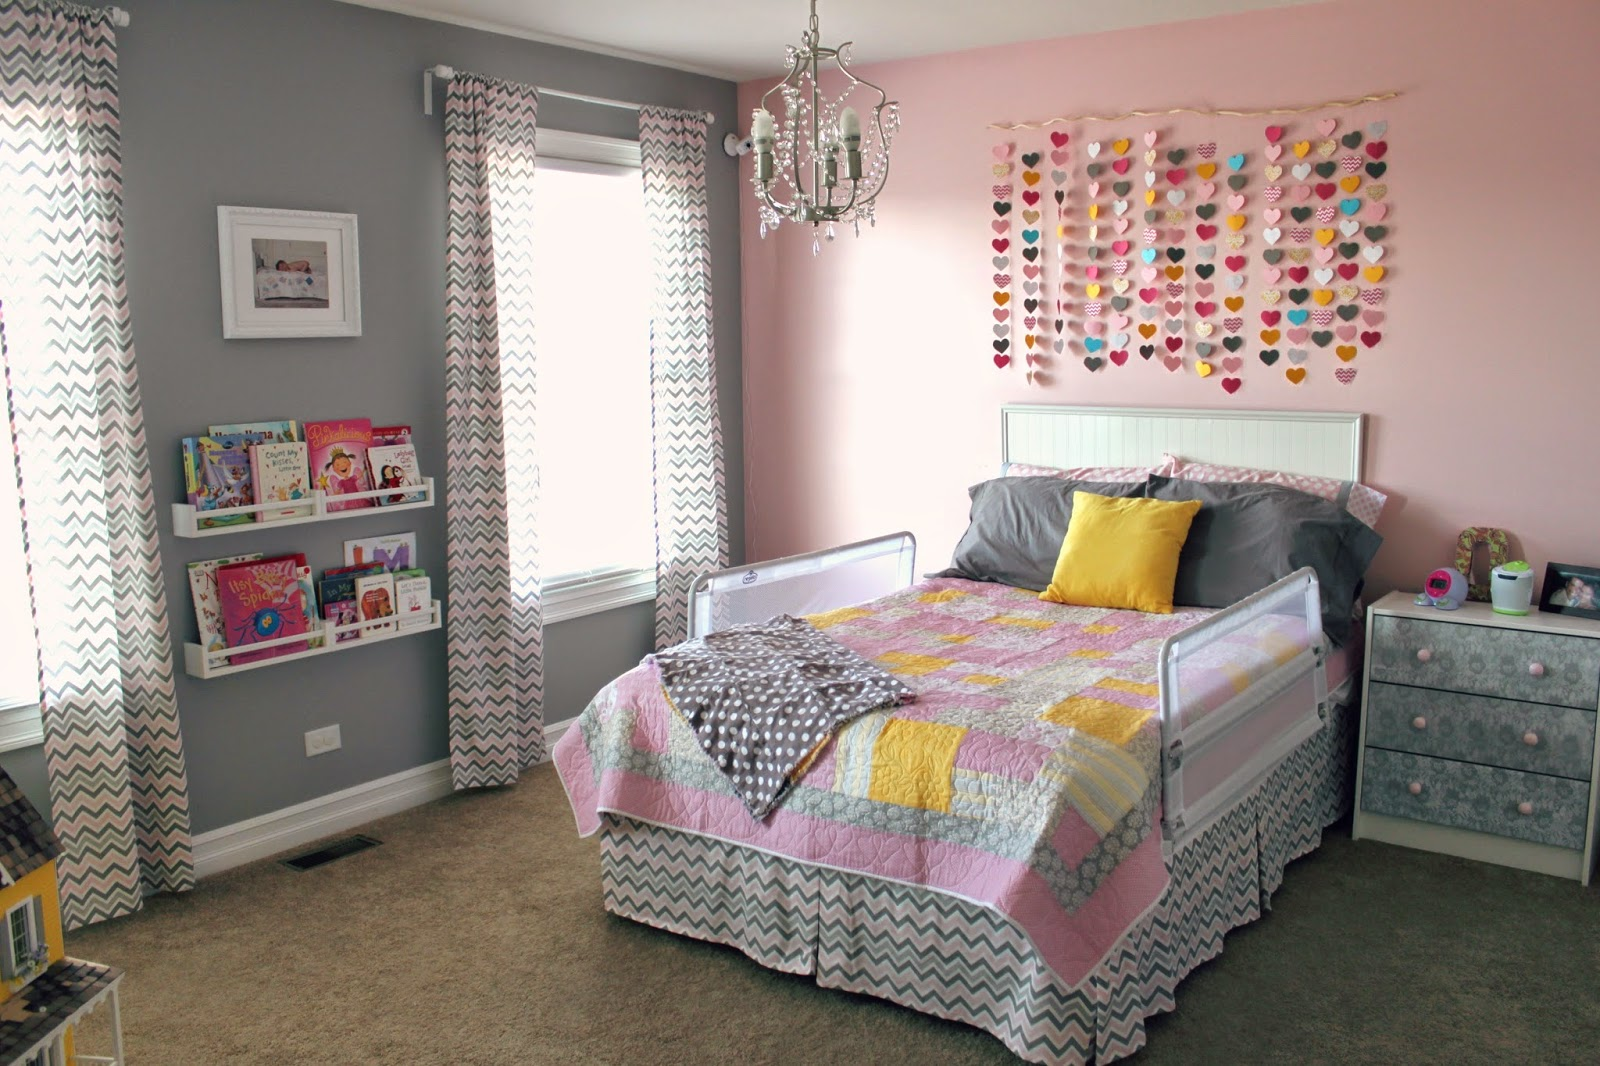 7 Inspiring Kid Room Color Options For Your Little Ones: All Things DIY: The Waterfall Of Hearts